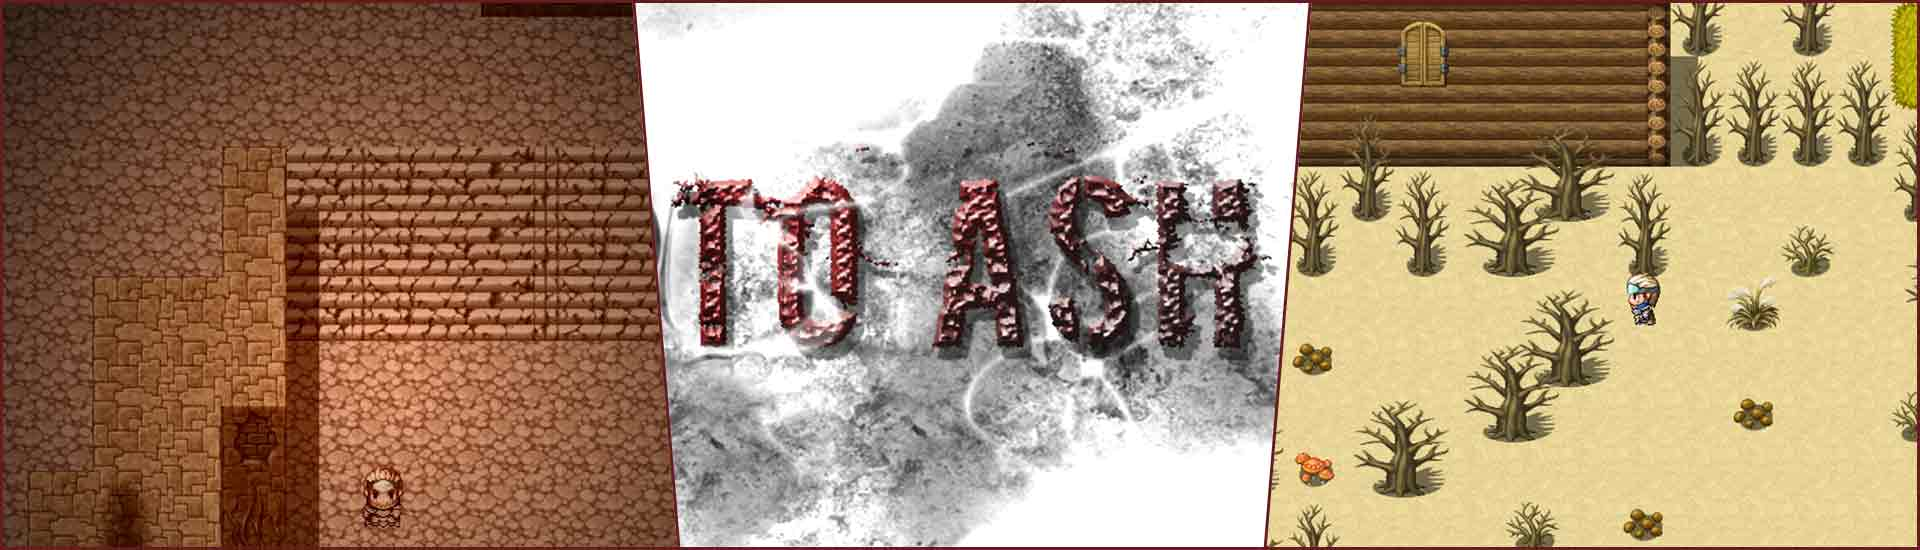 To Ash cover